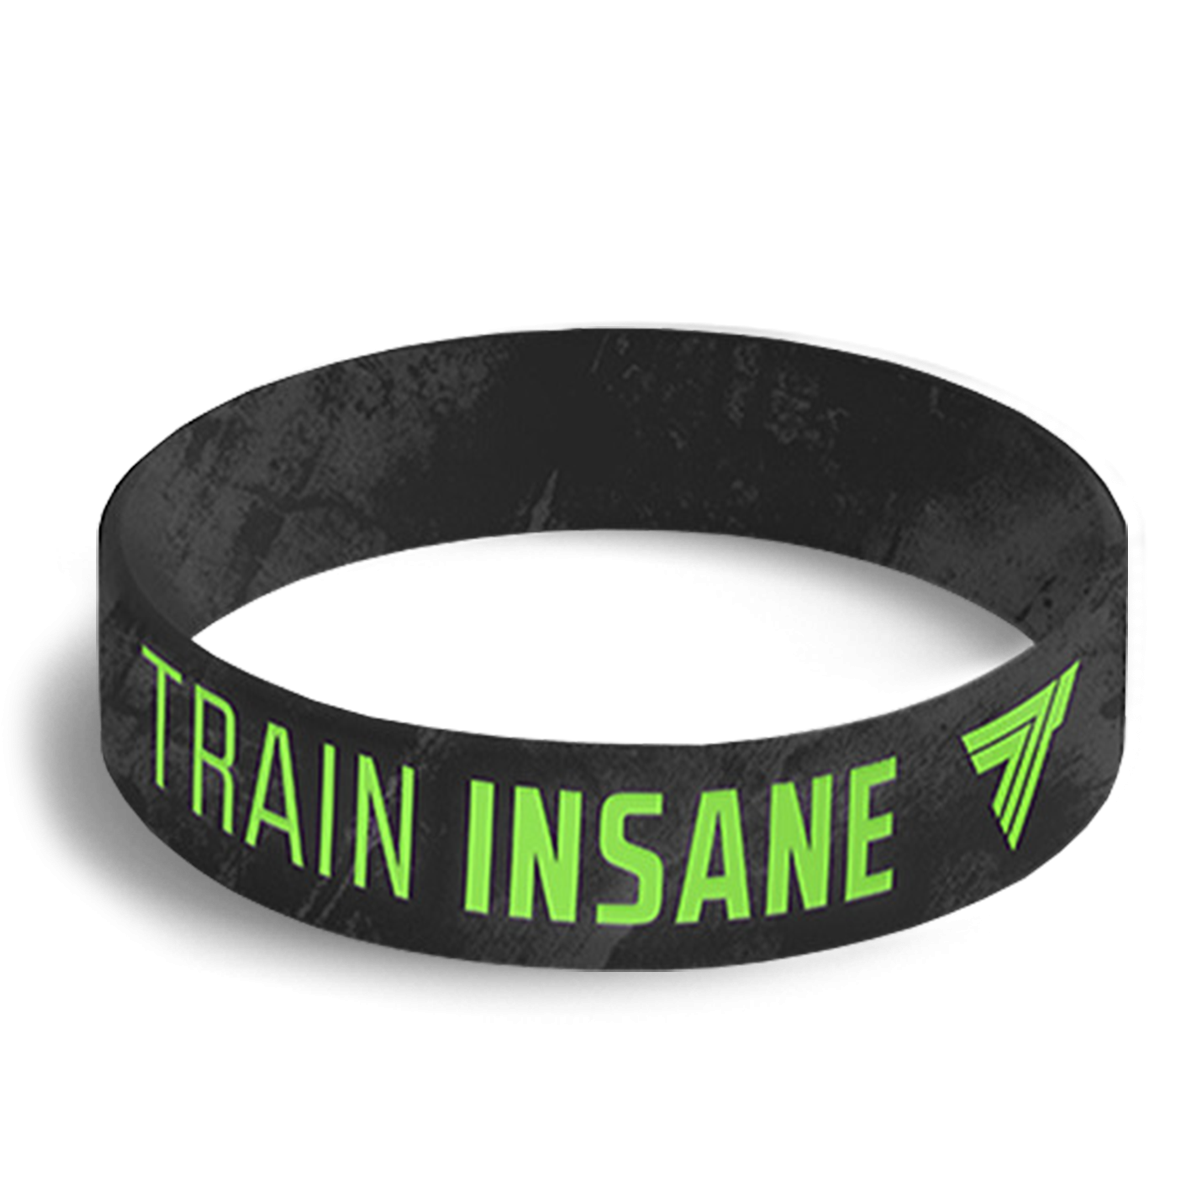 WRISTBAND 043 - TRAIN INSANE